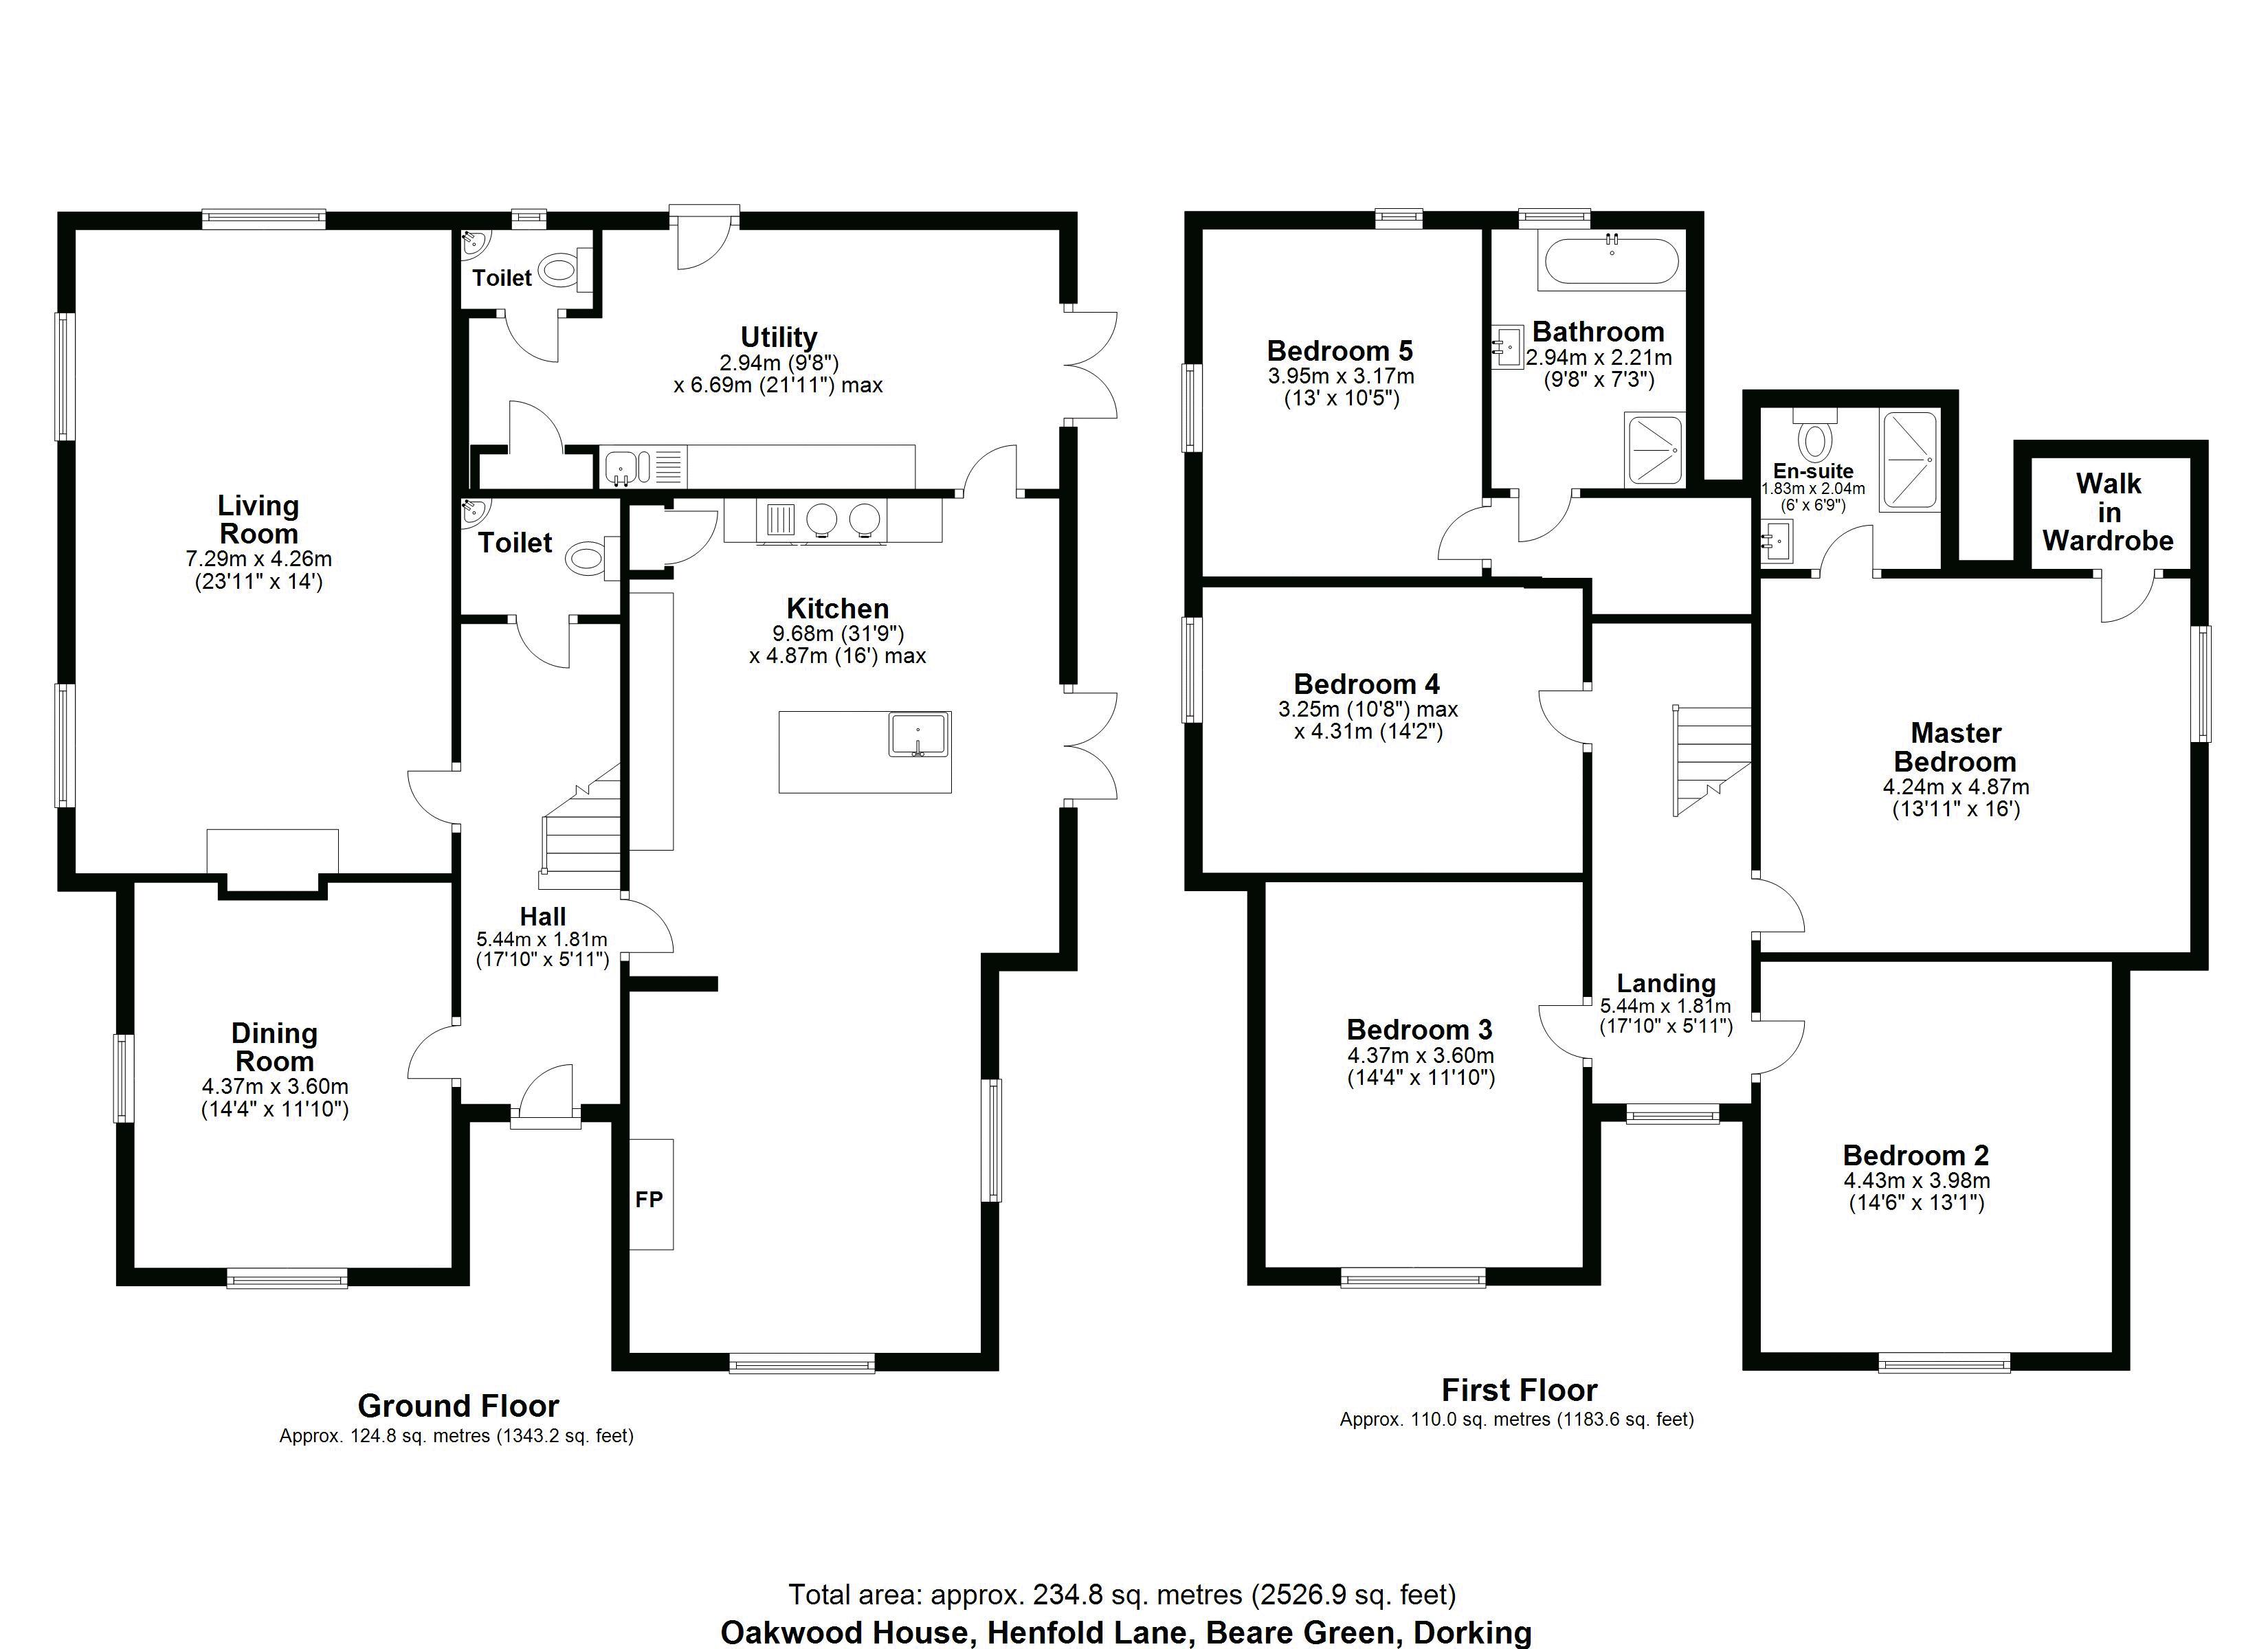 Oakwood House Floorplan